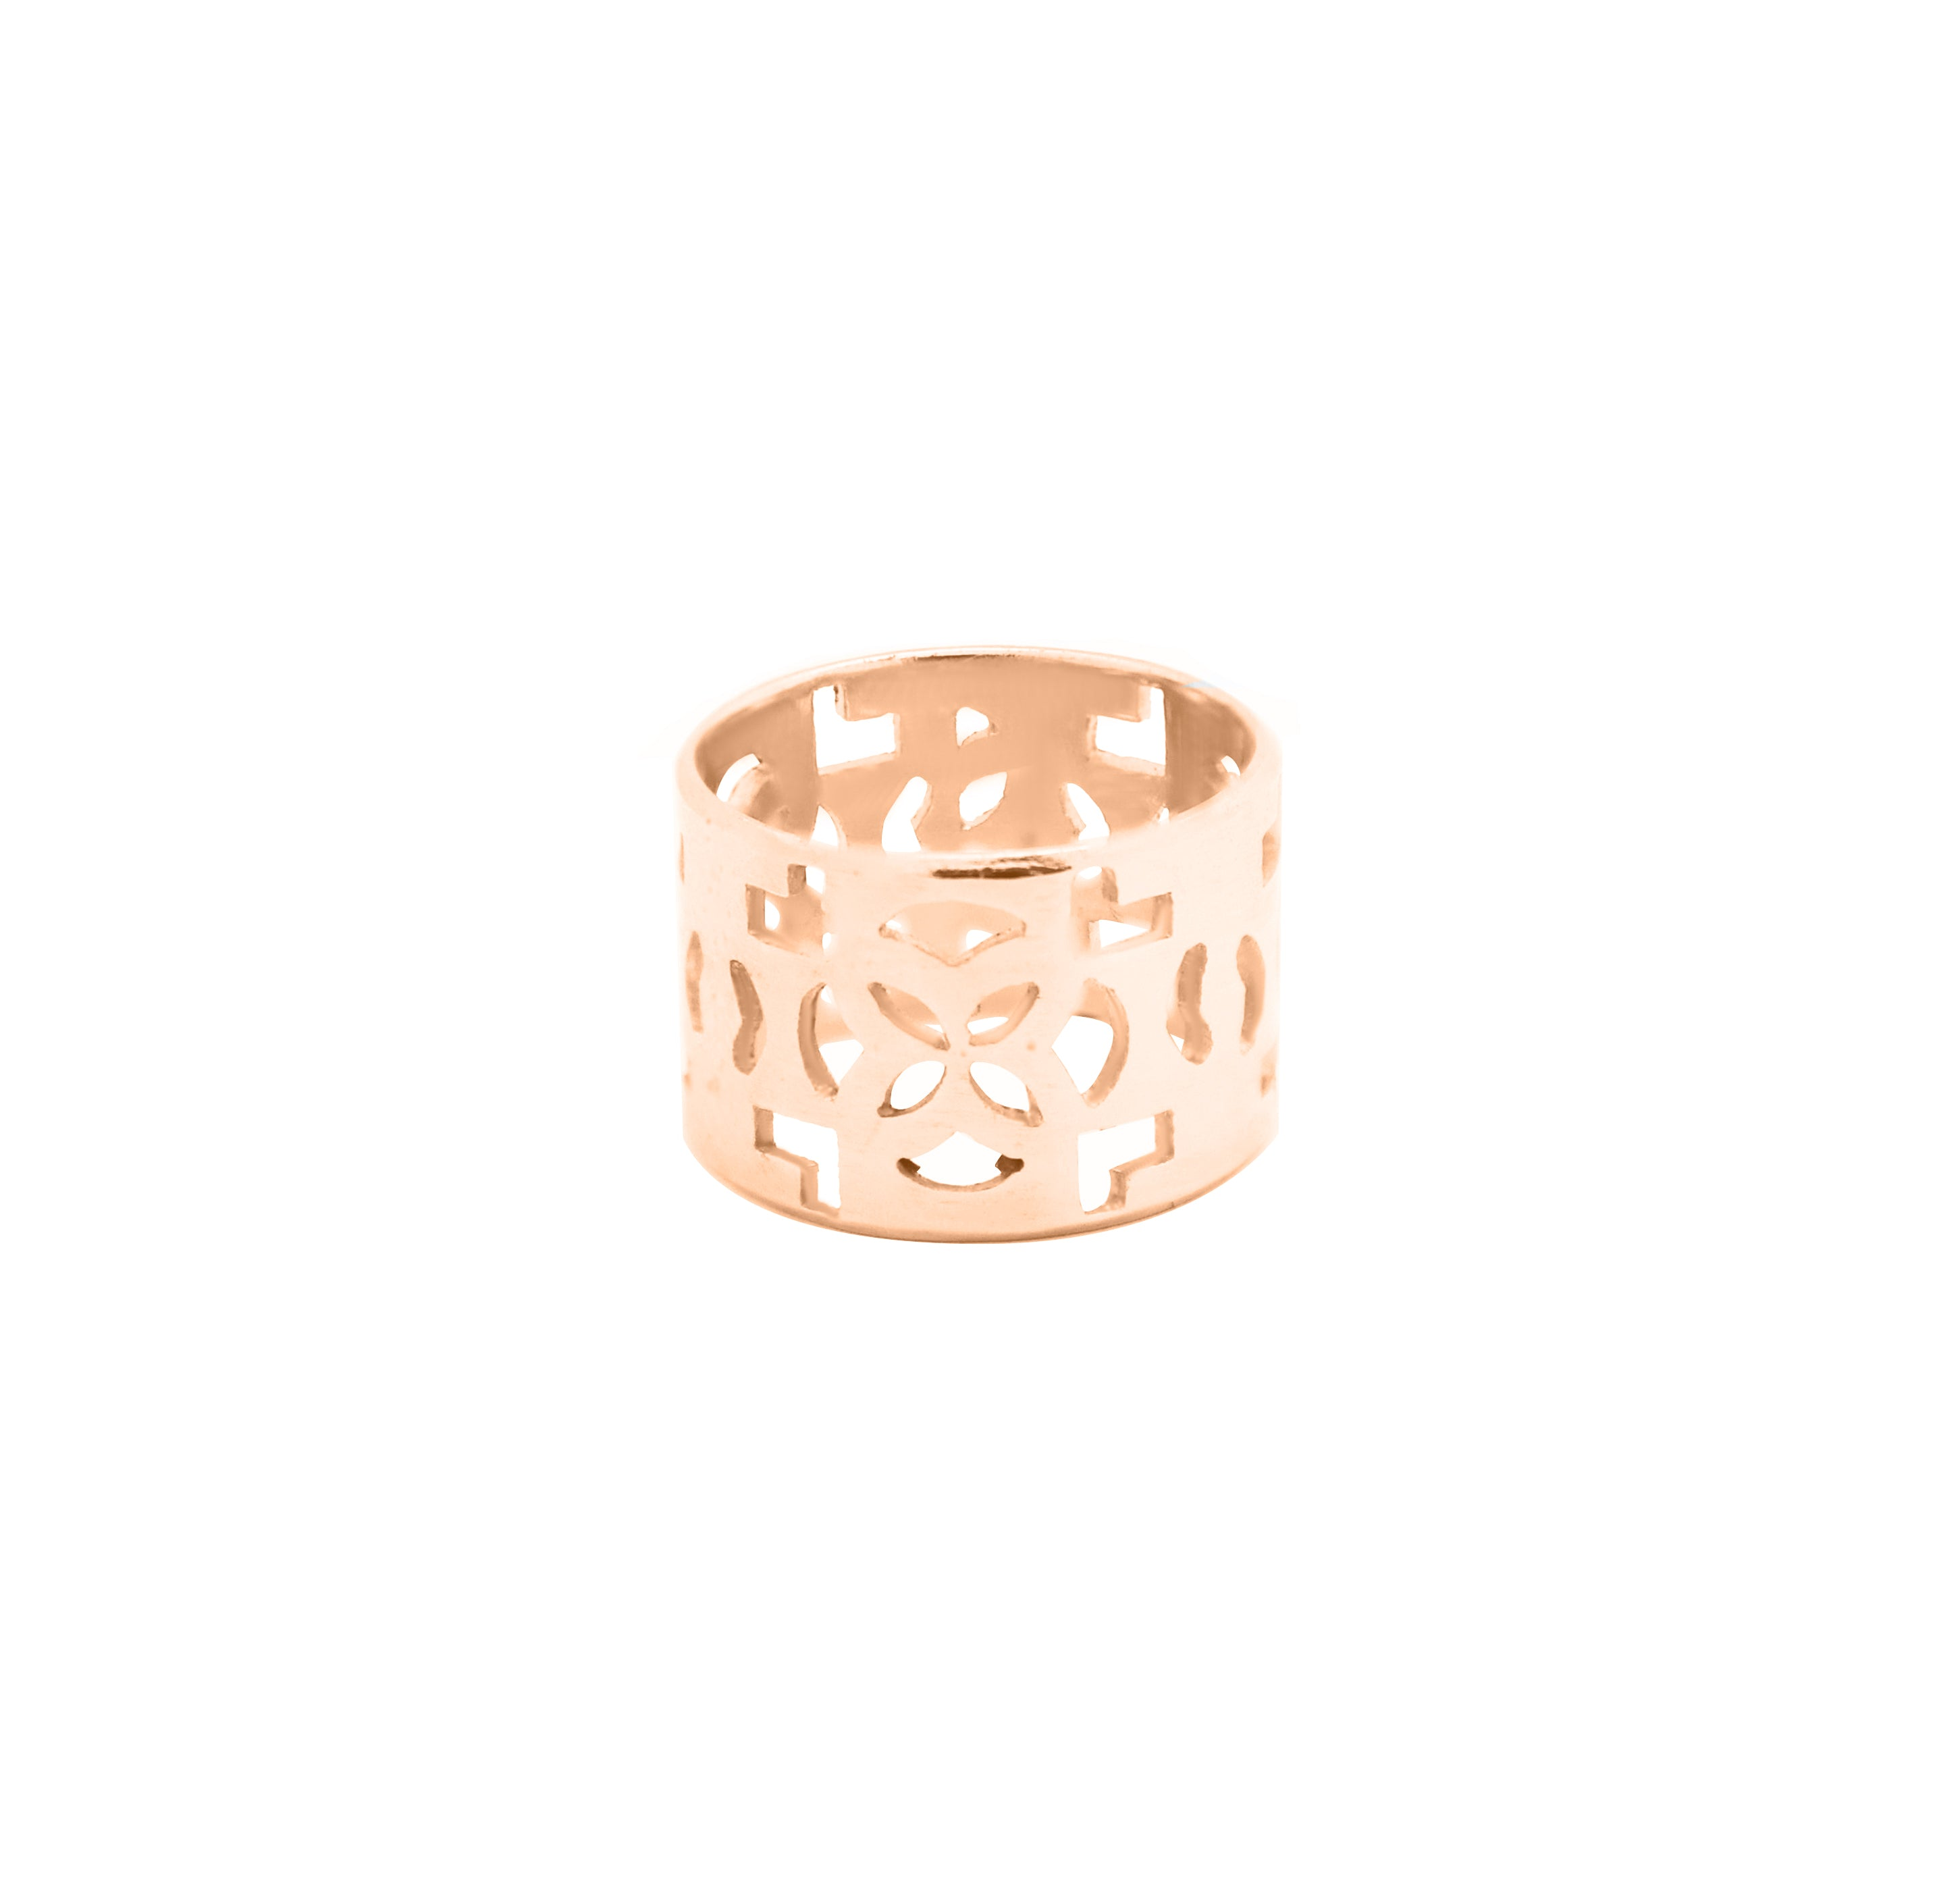 Azulejos Band Ring